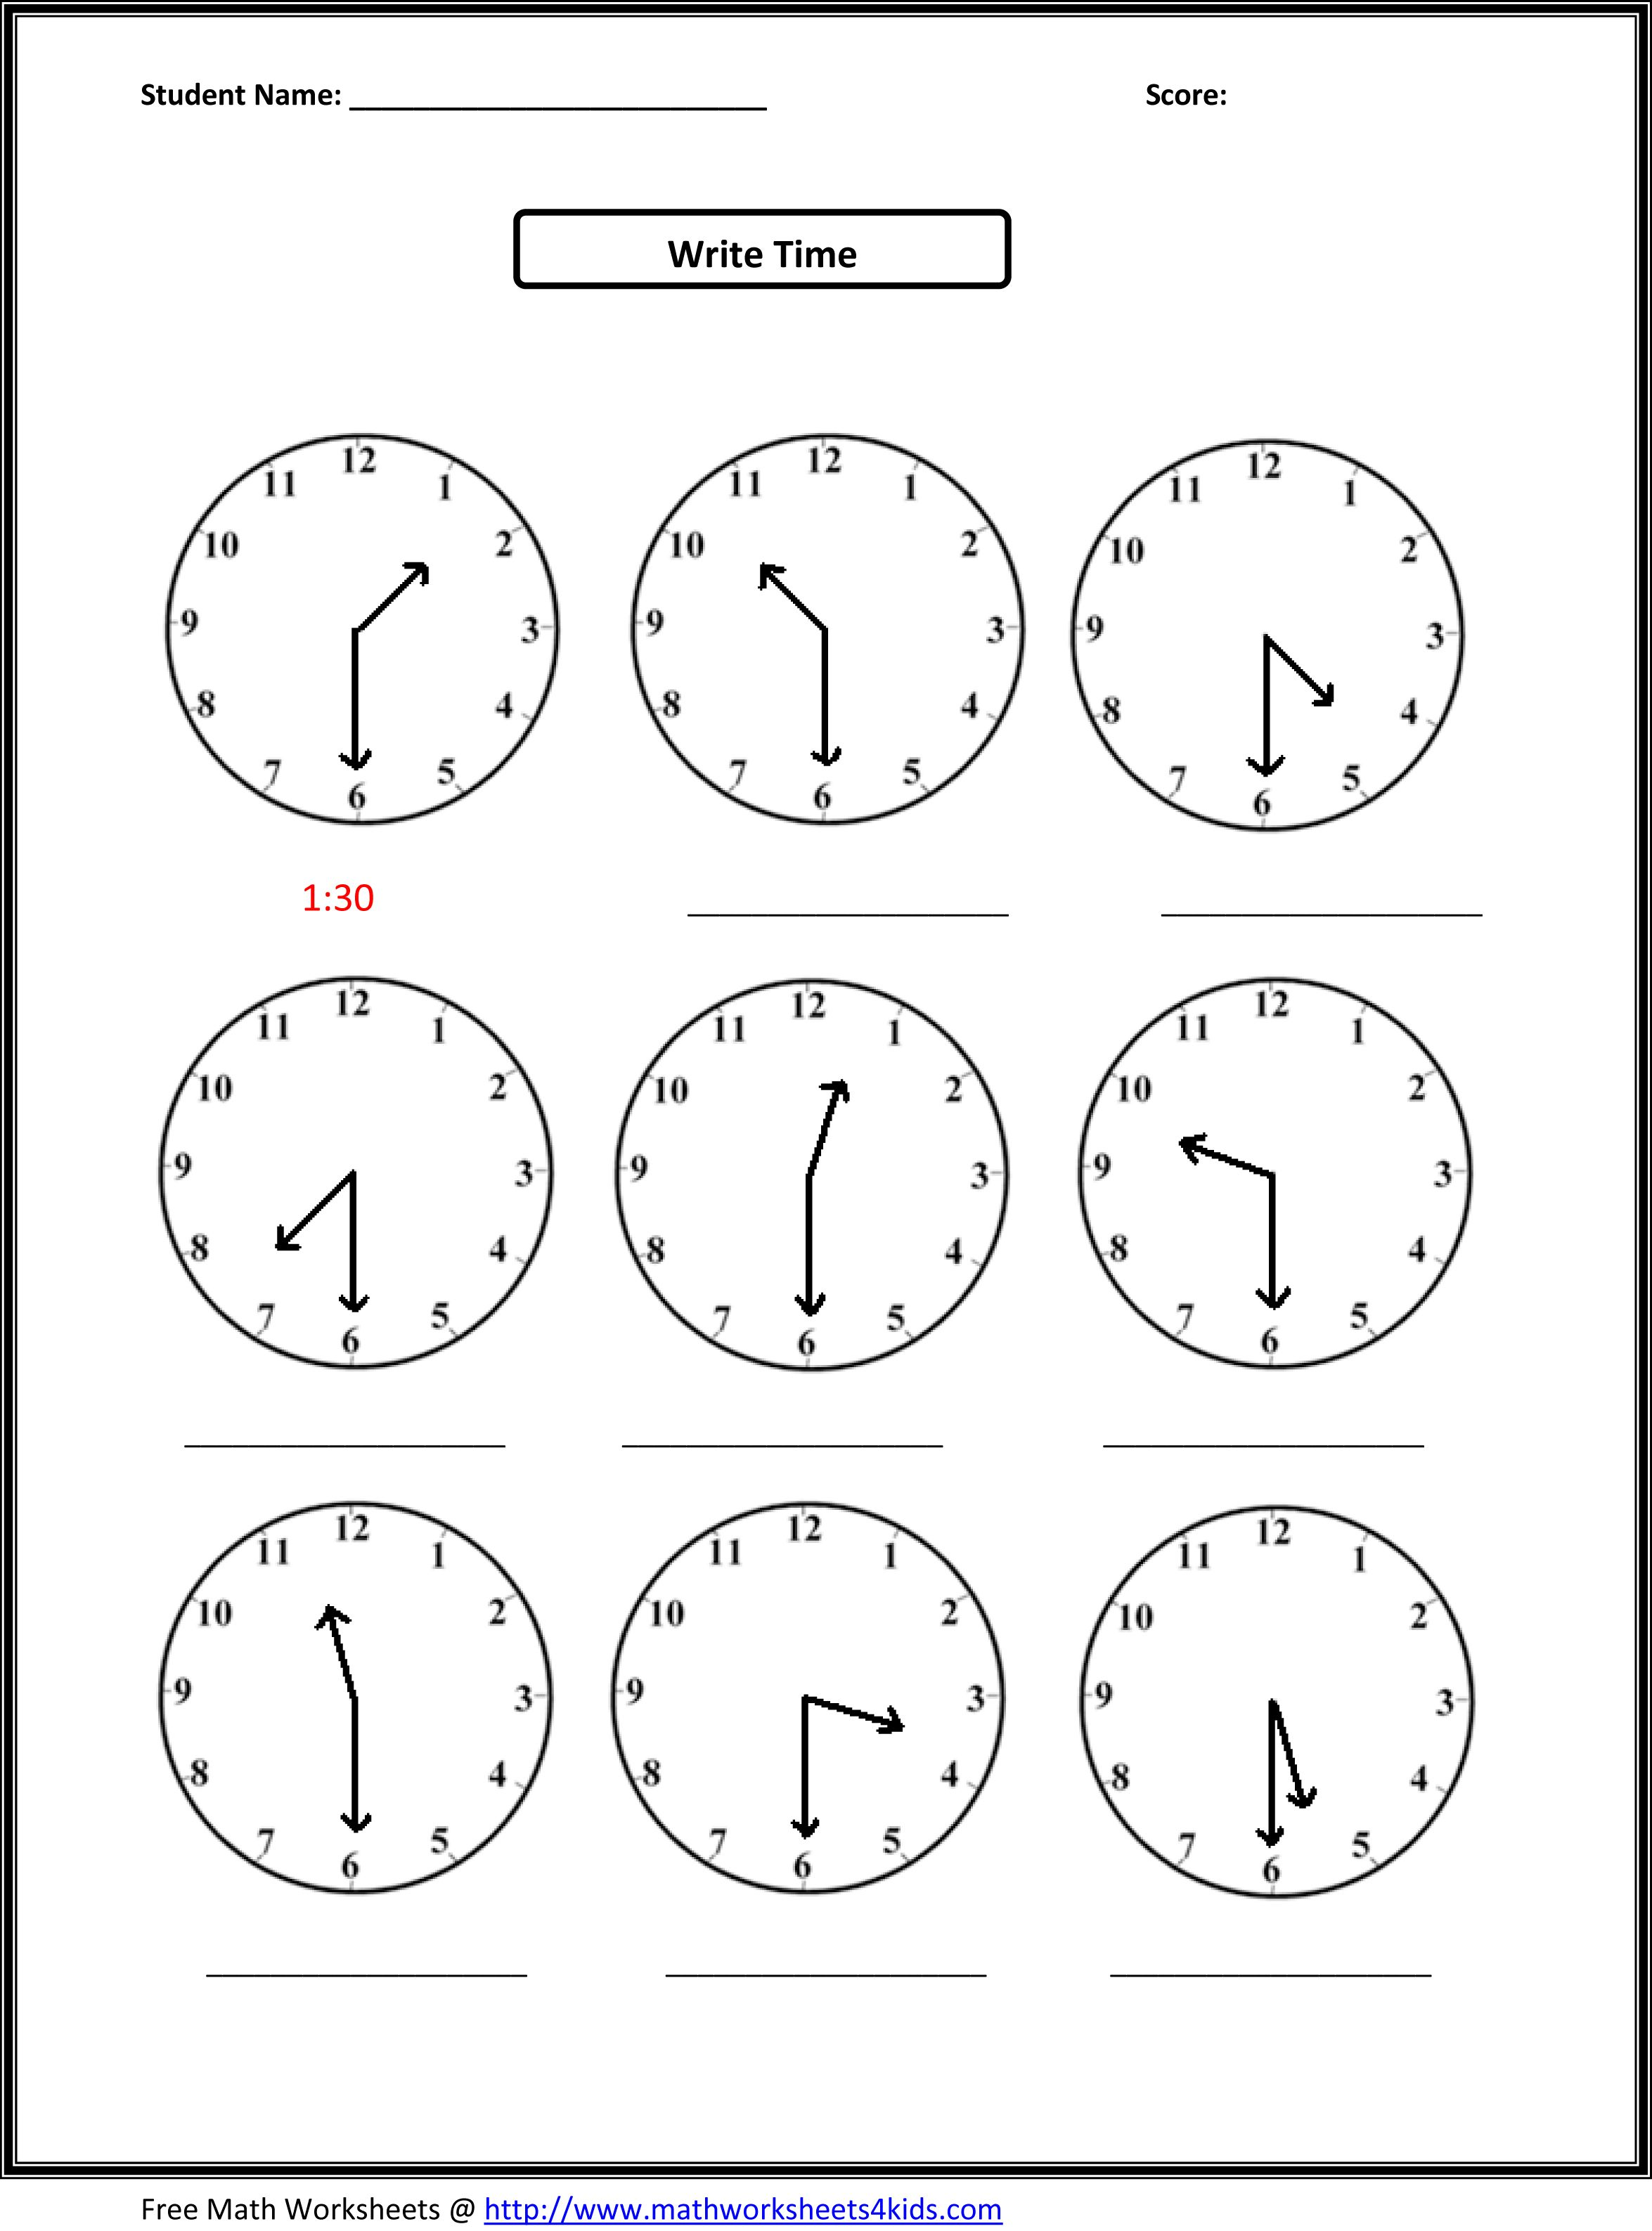 Proatmealus  Gorgeous Worksheet On Time For Grade   Reocurent With Extraordinary Free Printable Telling Time Worksheets Nd Grade  Reocurent With Appealing Printable Phonics Worksheets For Kindergarten Also Fun Division Worksheets Th Grade In Addition Free Printable Missing Number Worksheets And Odd One Out Worksheets For Kids As Well As Symetry Worksheets Additionally  Times Tables Worksheets From Reocurentcom With Proatmealus  Extraordinary Worksheet On Time For Grade   Reocurent With Appealing Free Printable Telling Time Worksheets Nd Grade  Reocurent And Gorgeous Printable Phonics Worksheets For Kindergarten Also Fun Division Worksheets Th Grade In Addition Free Printable Missing Number Worksheets From Reocurentcom